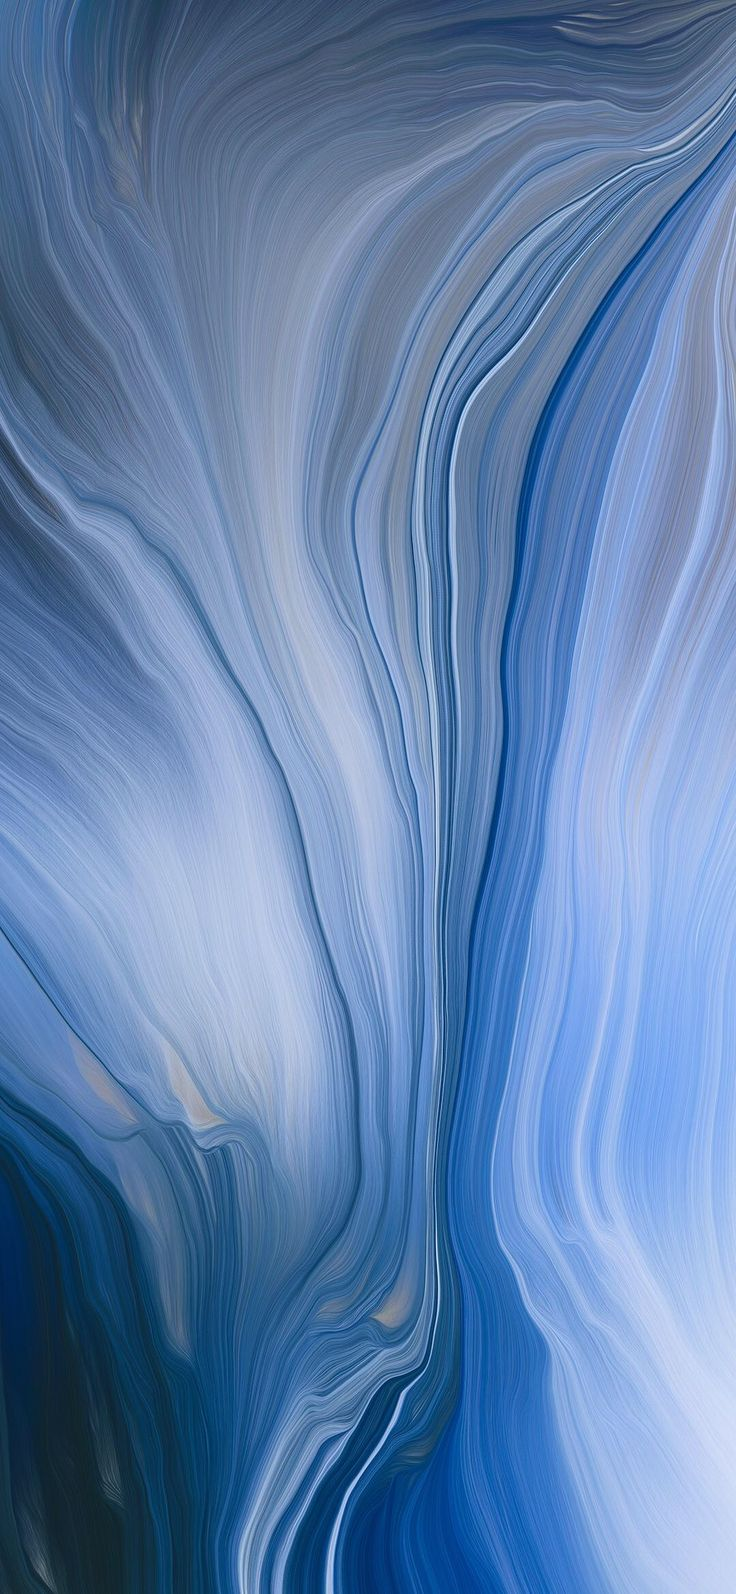 Abstract HD Wallpapers 83246293098490826 2